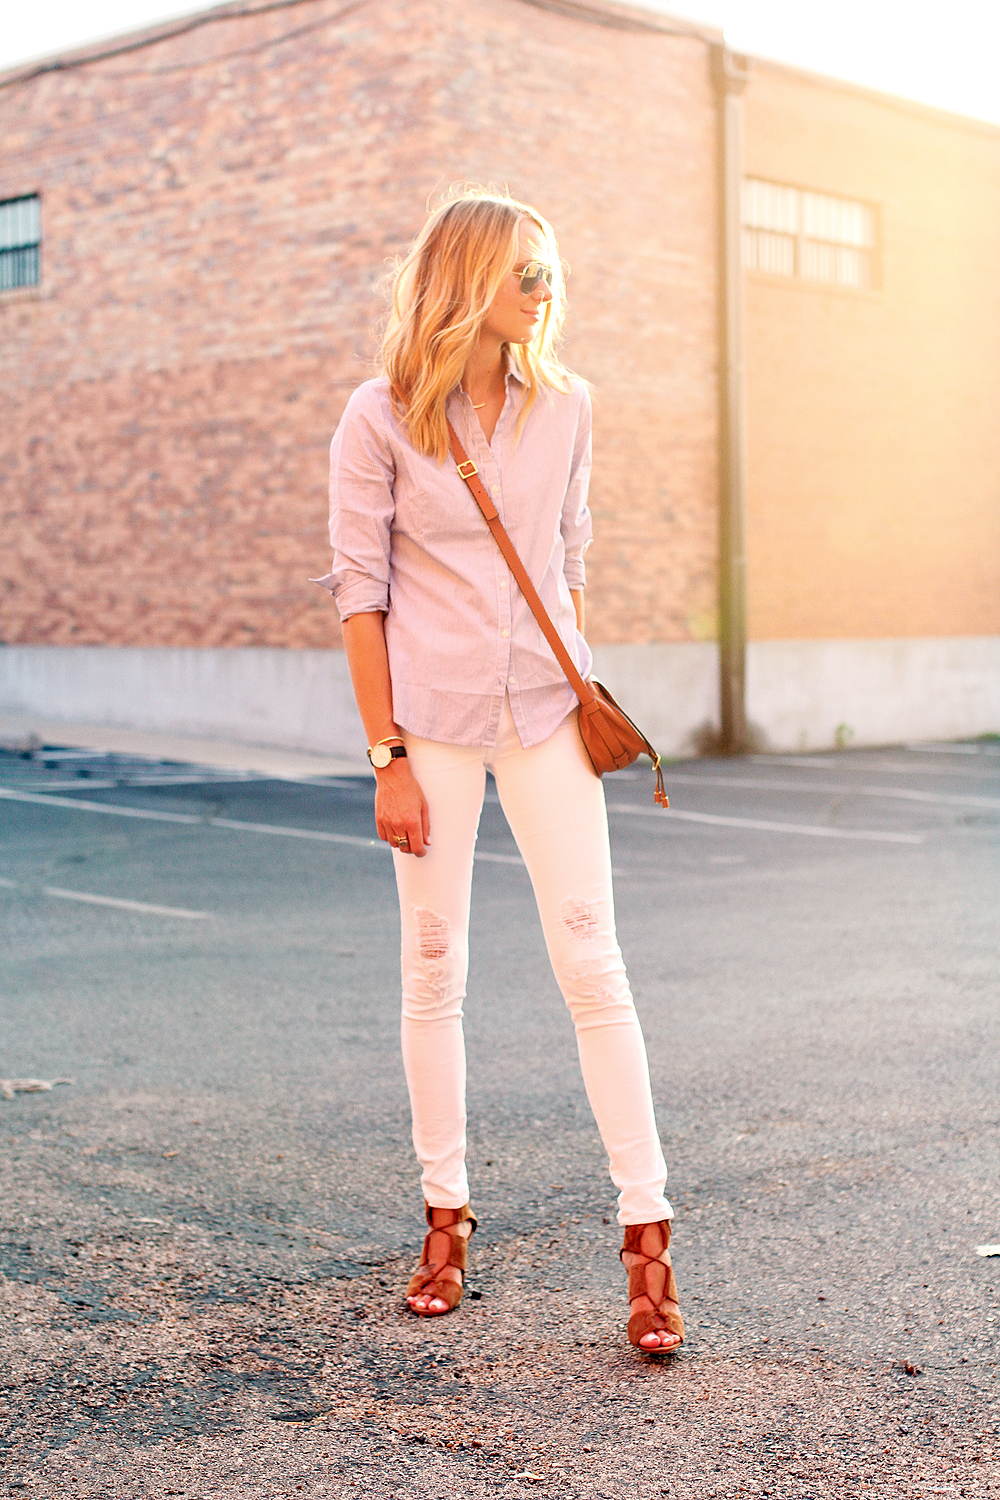 fashion-jackson-blue-white-stripe-shirt-james-jeans-twiggy-white-jeans-ray-ban-silver-mirrored-aviator-sunglasses-chloe-marcie-small-crossbody-tan-zara-tan-suede-lace-up-sandals